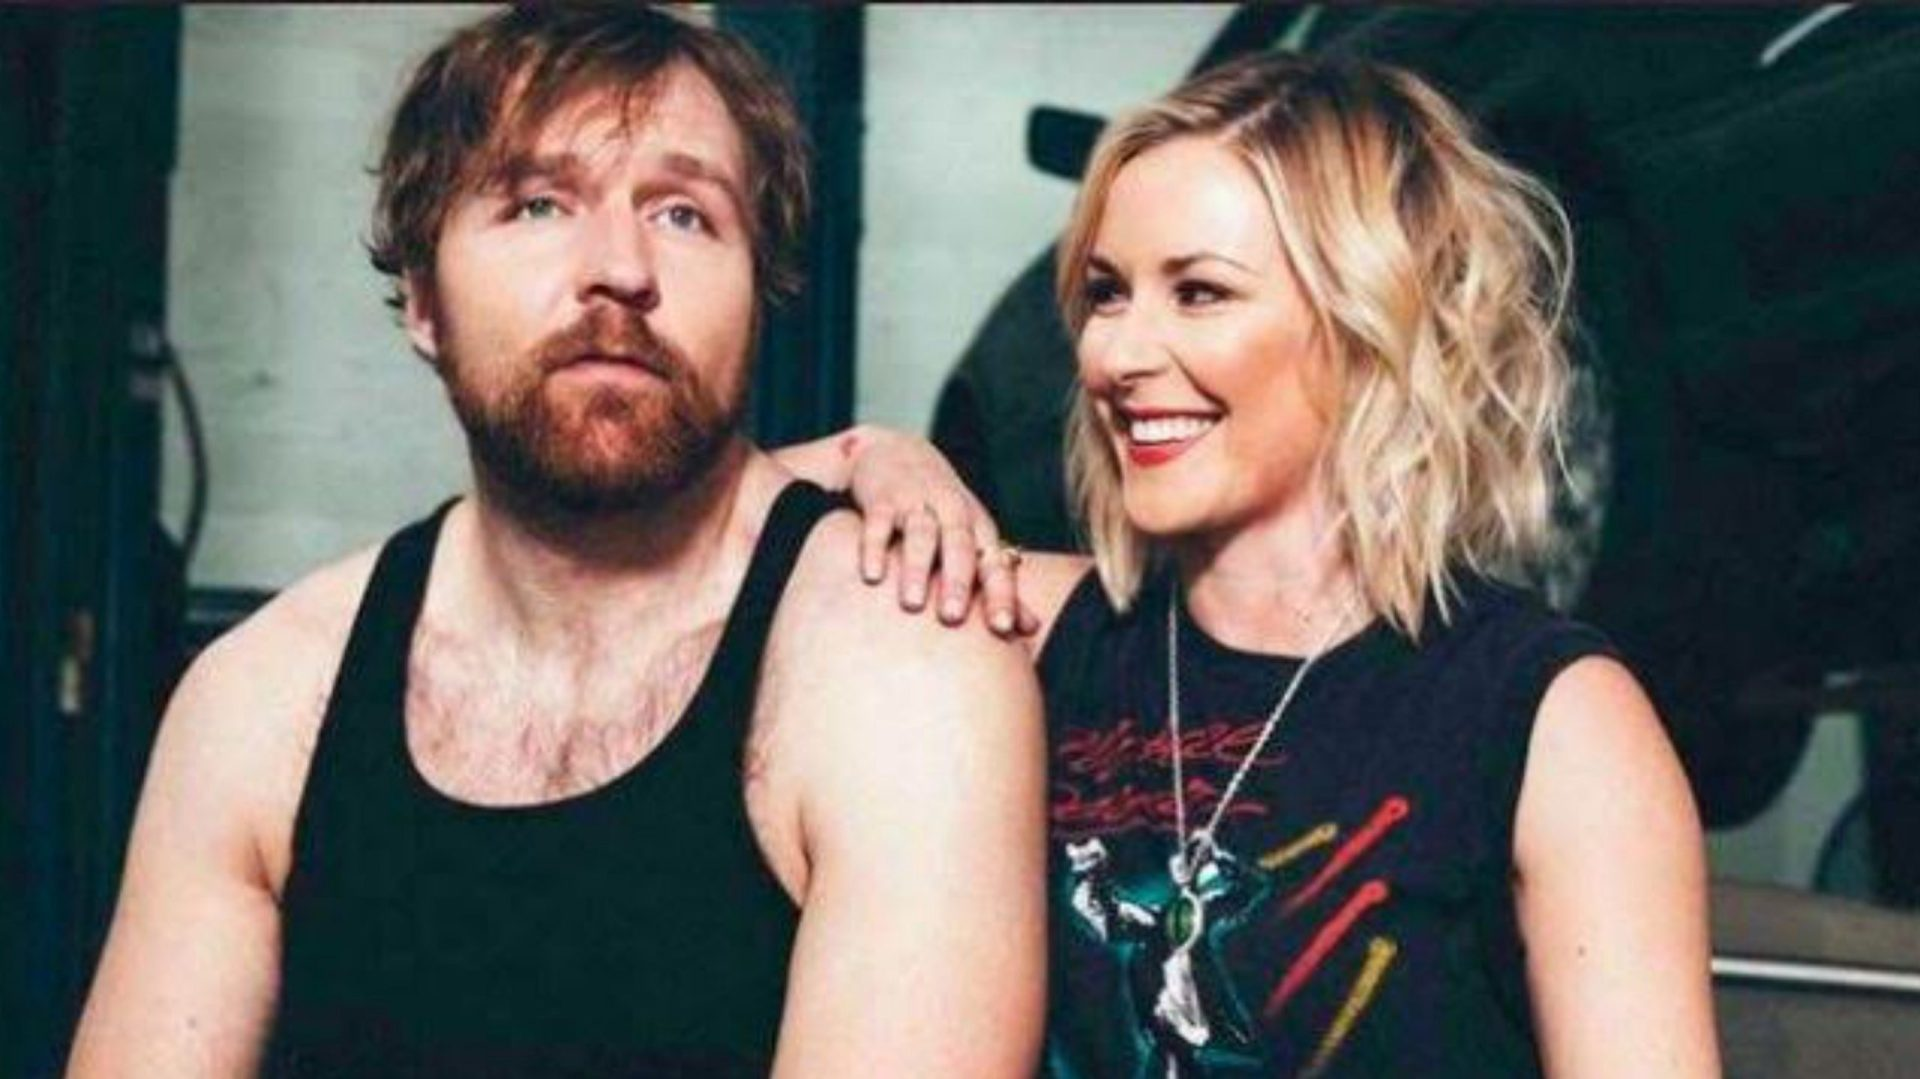 Jon Moxley and Renee Paquette are now parents - THE SPORTS ROOM